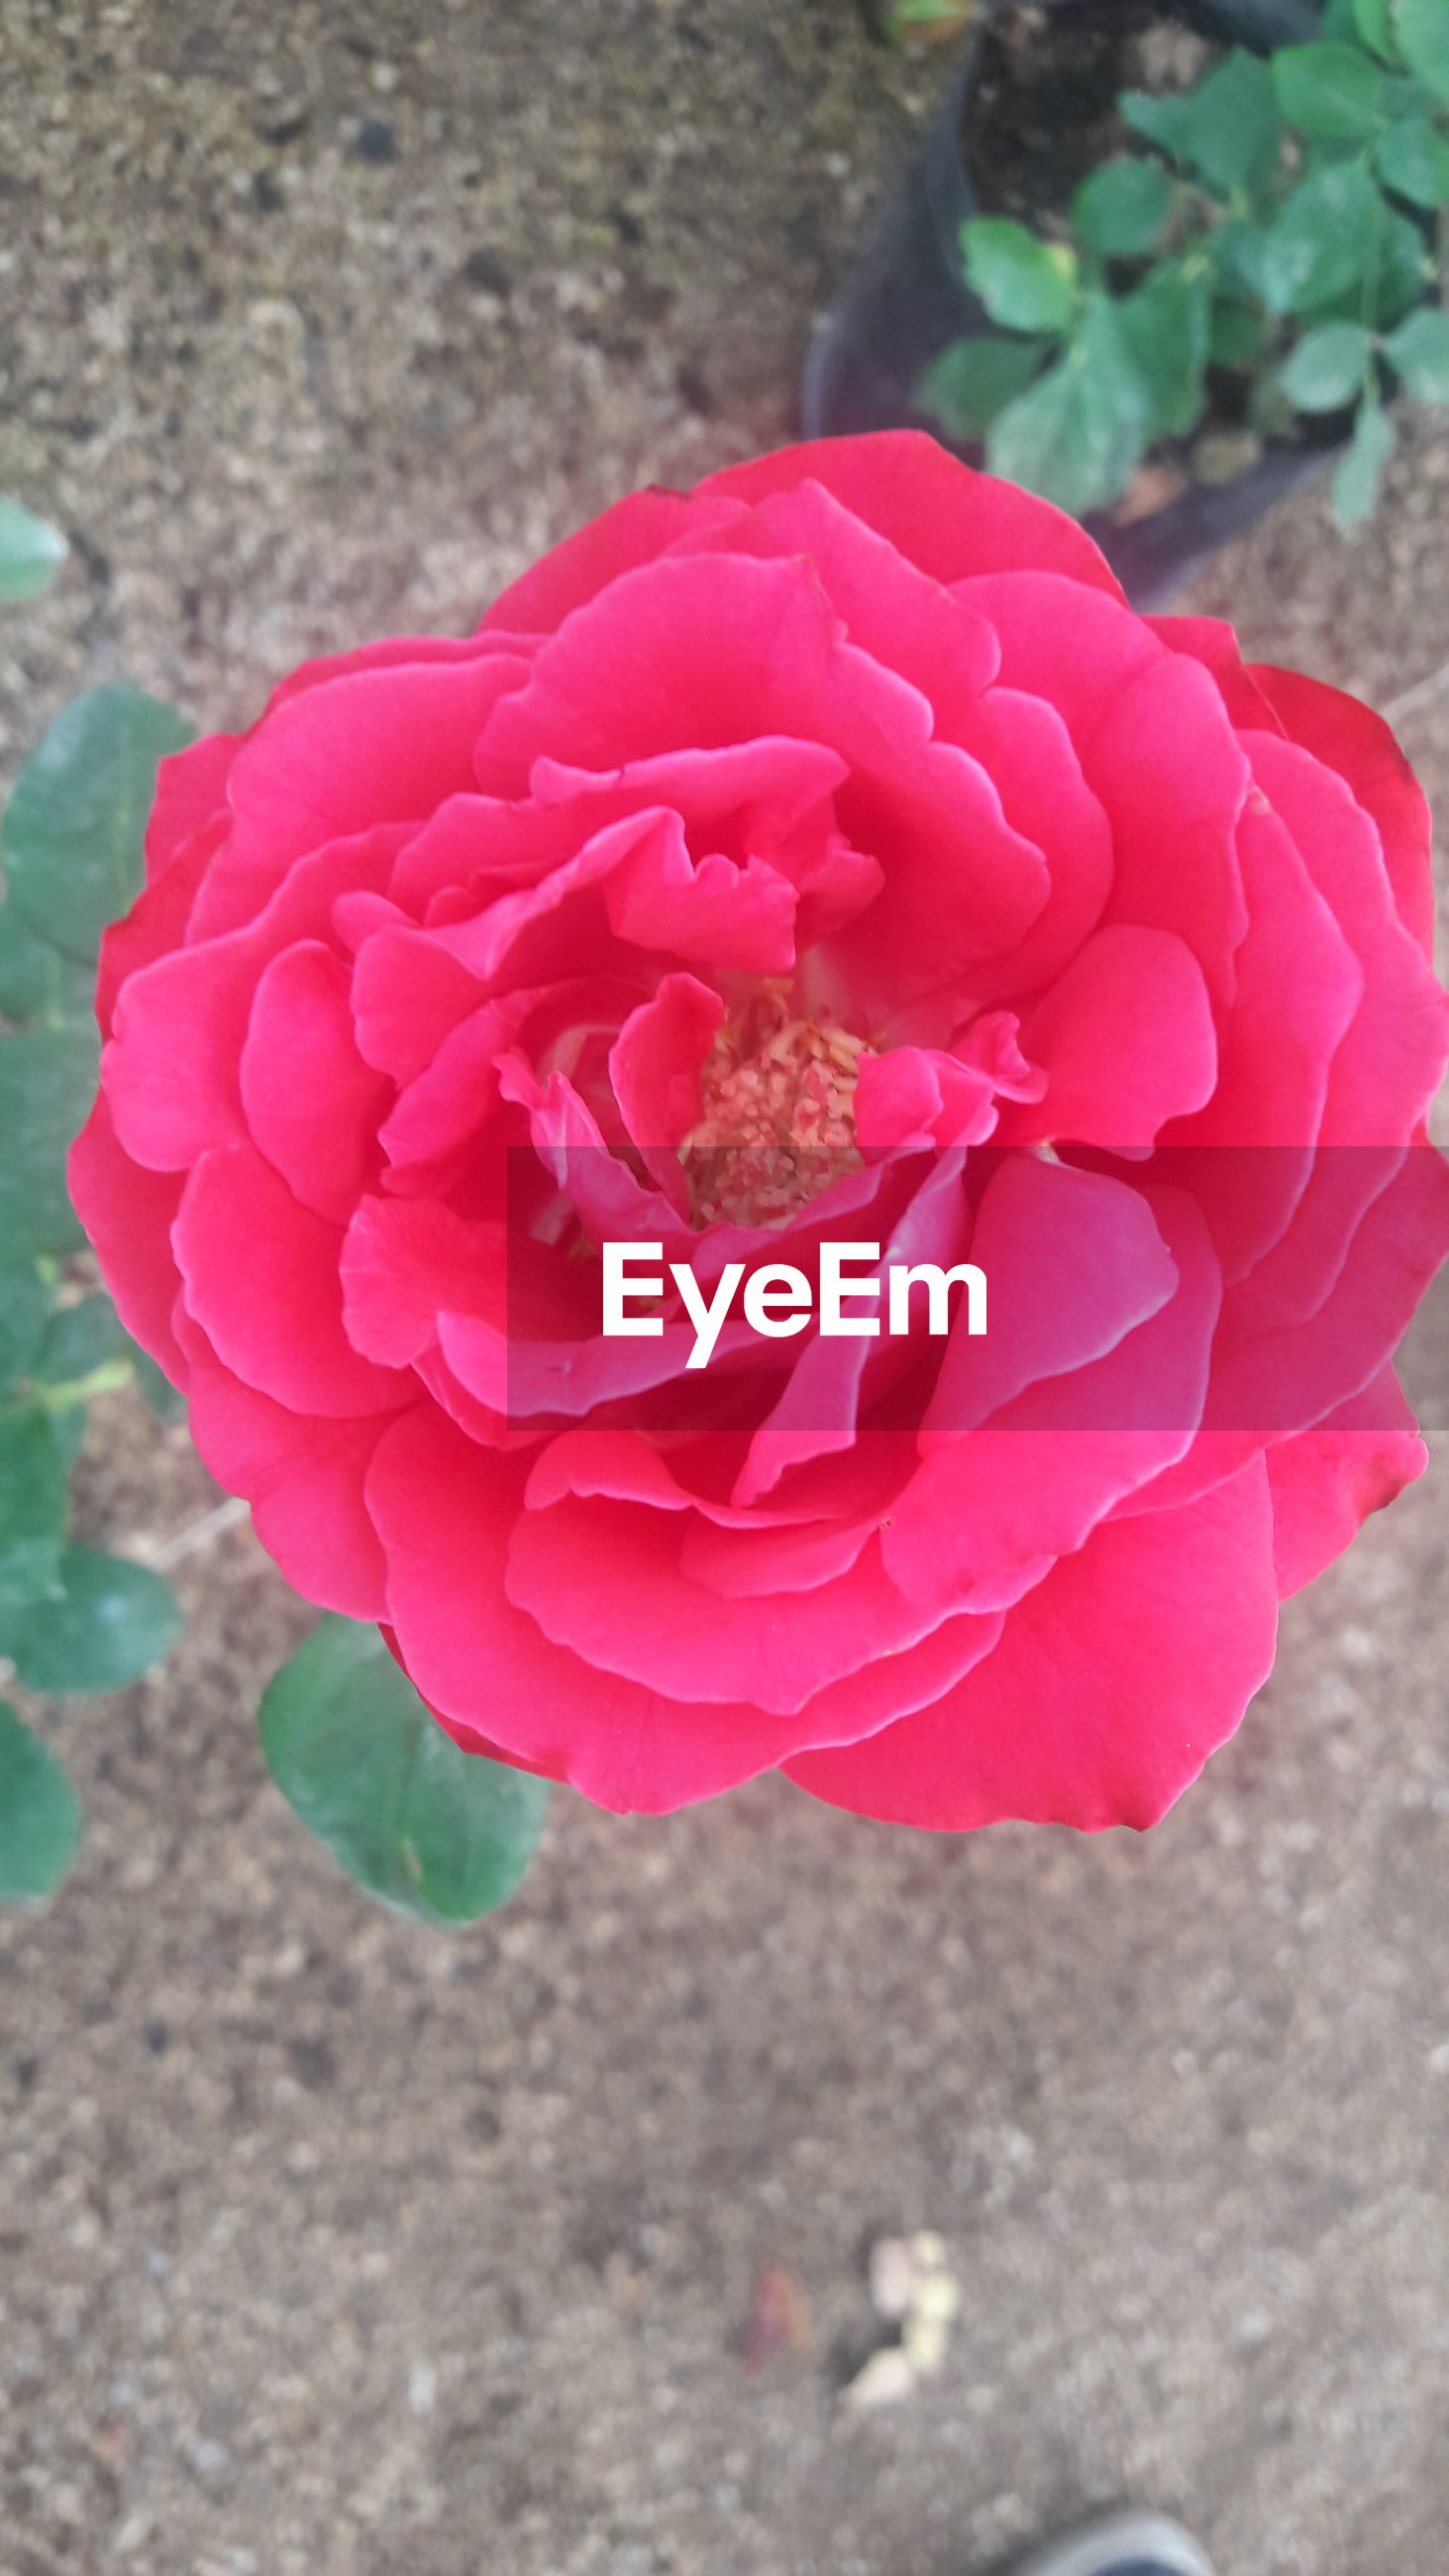 flower, petal, flower head, fragility, freshness, pink color, growth, beauty in nature, close-up, focus on foreground, nature, blooming, plant, red, rose - flower, in bloom, day, outdoors, no people, blossom, botany, selective focus, softness, pollen, growing